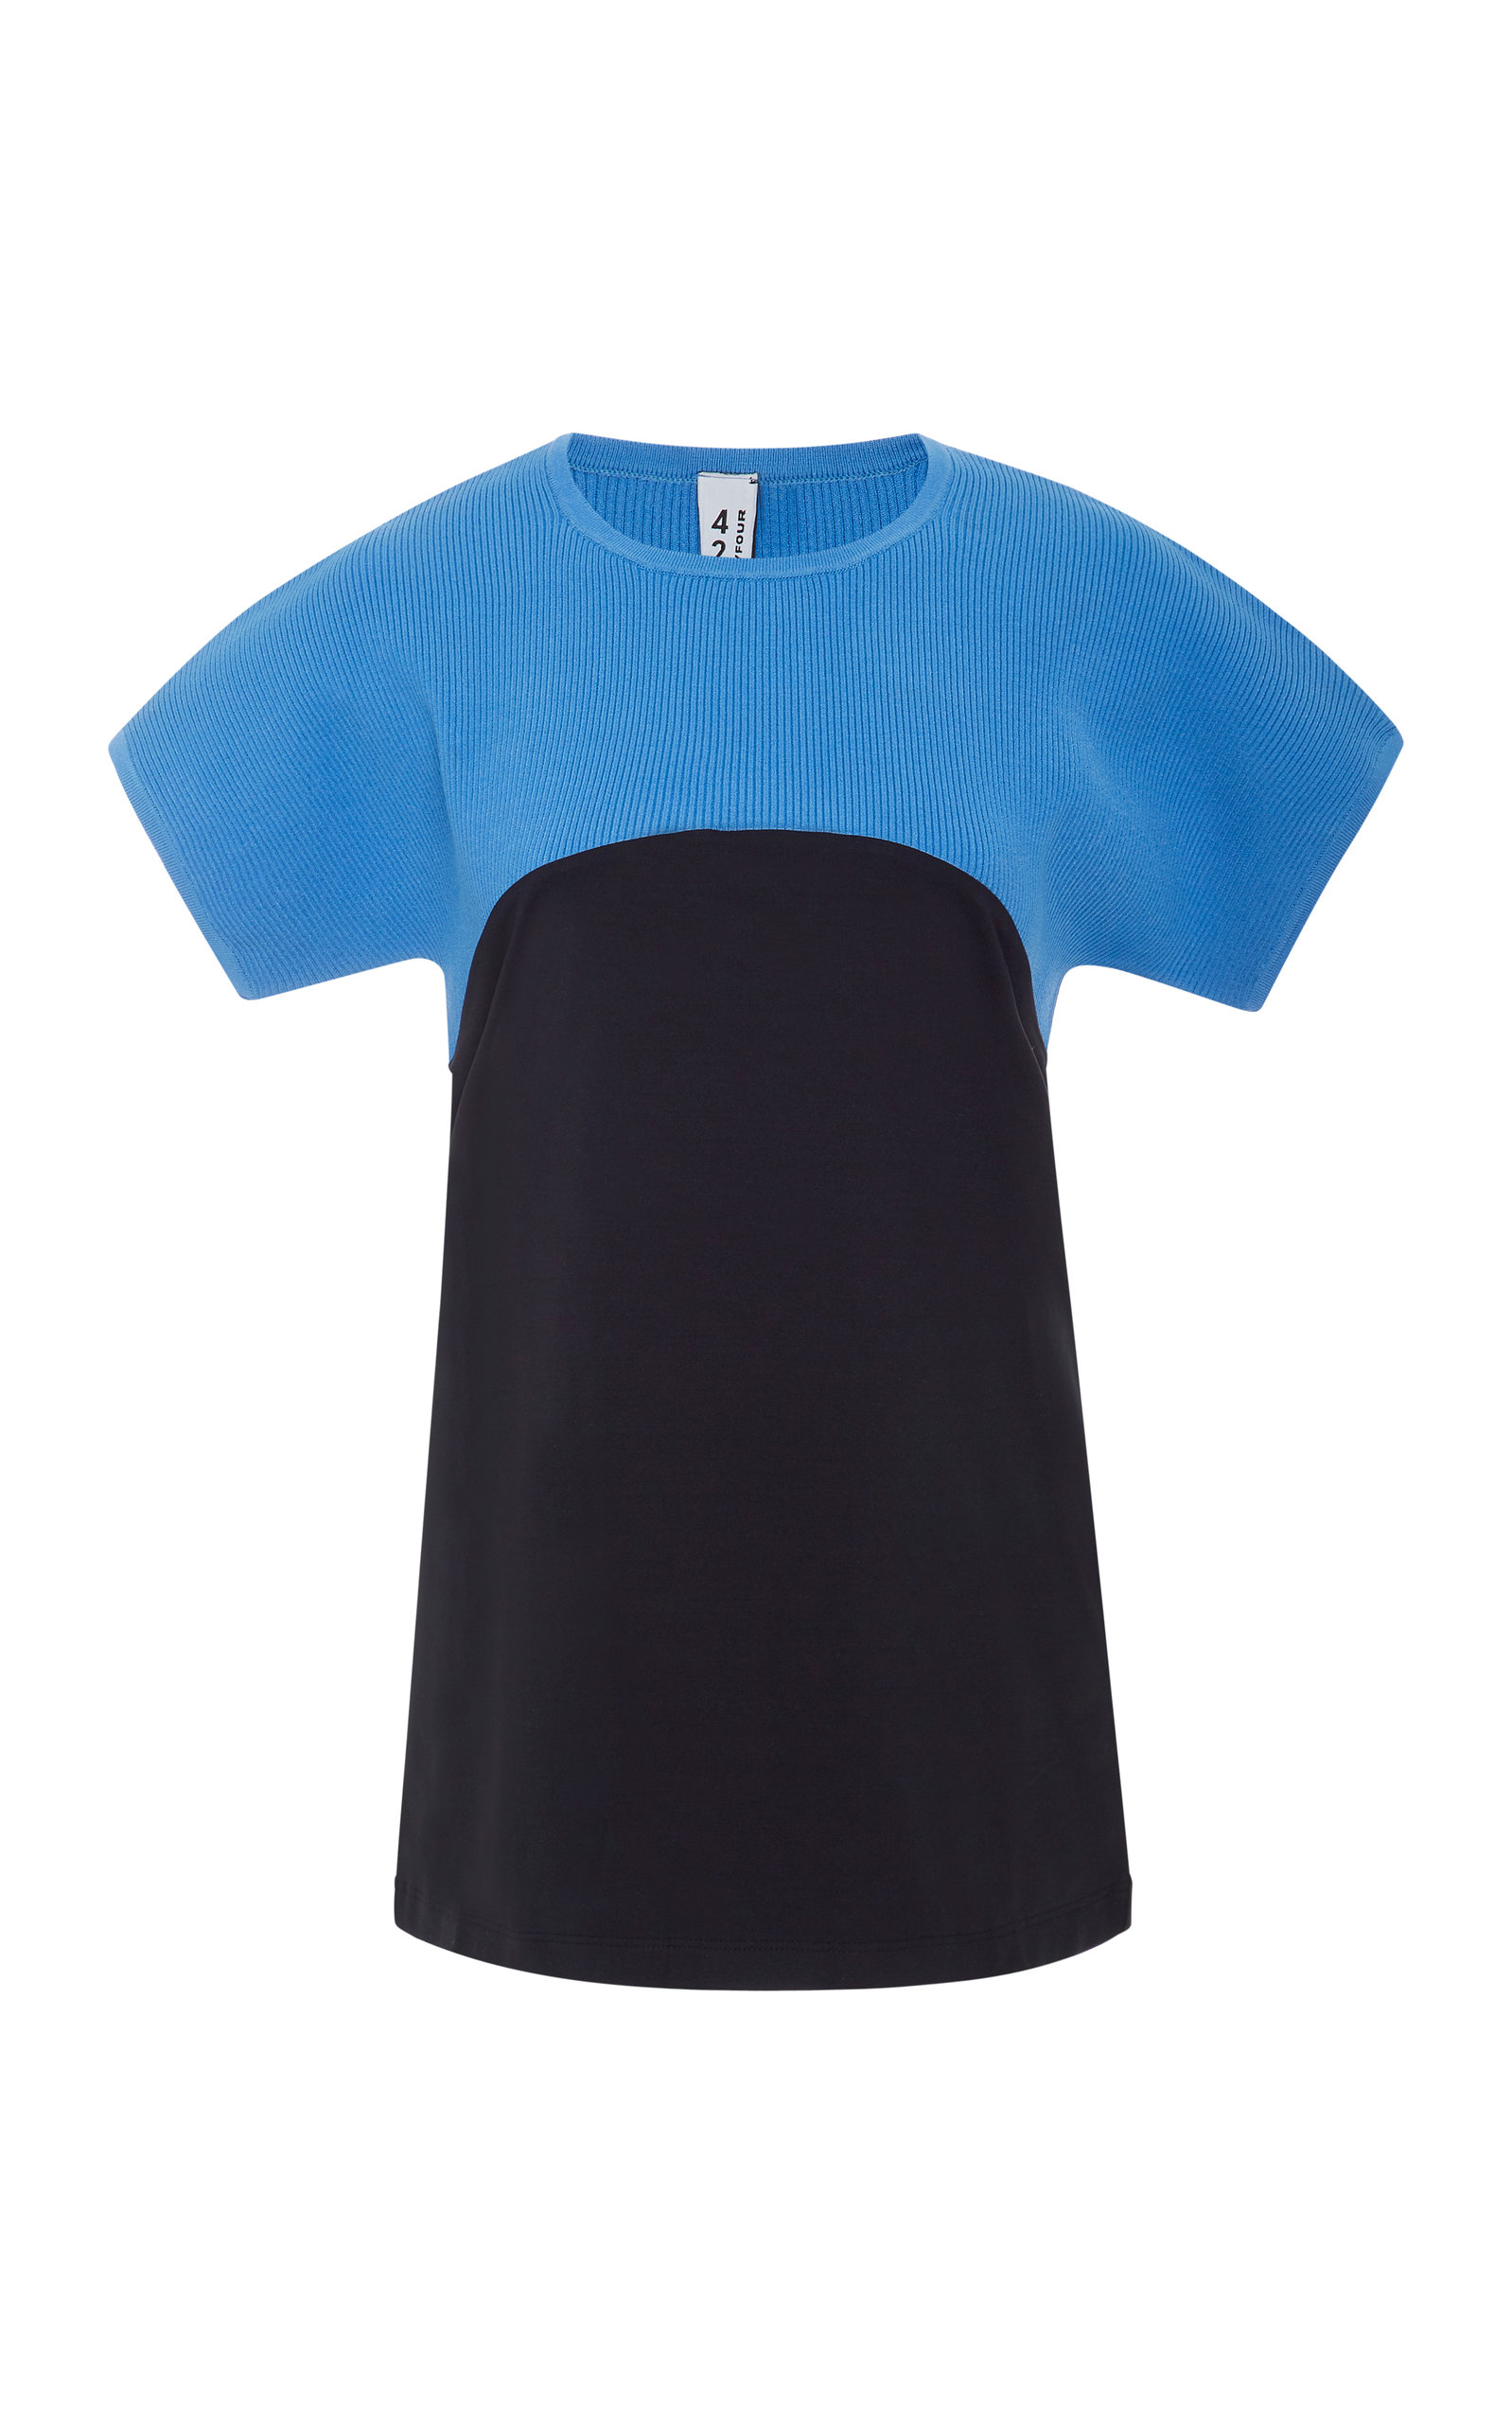 4254 SPORT Two-Tone Knitted Tee in Blue